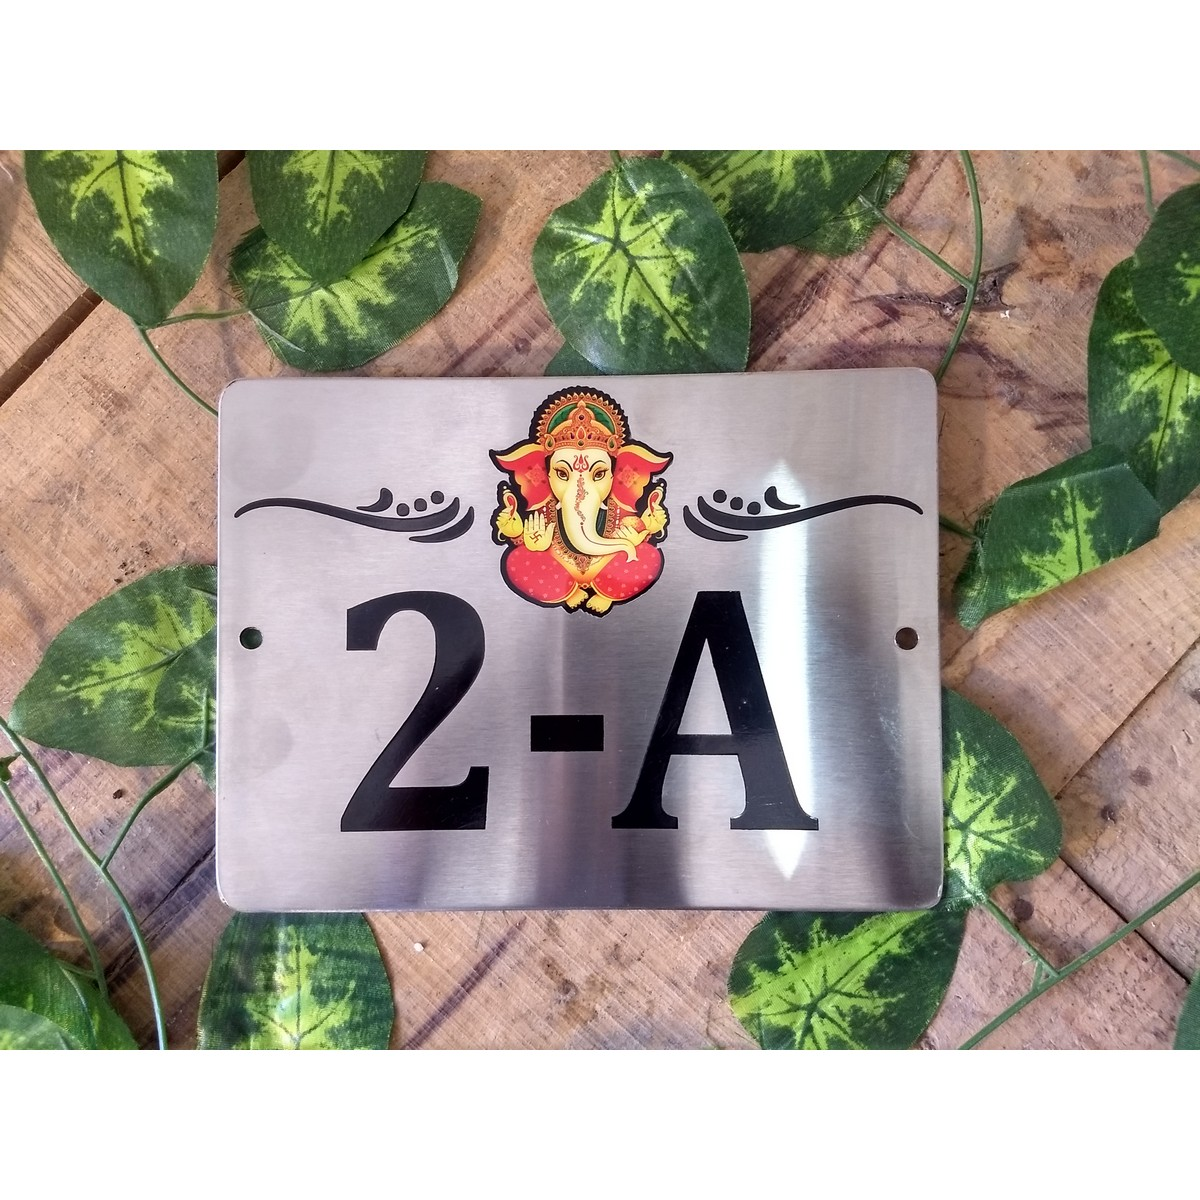 Stainless Steel Laser Engraved Name Plate - SS 304